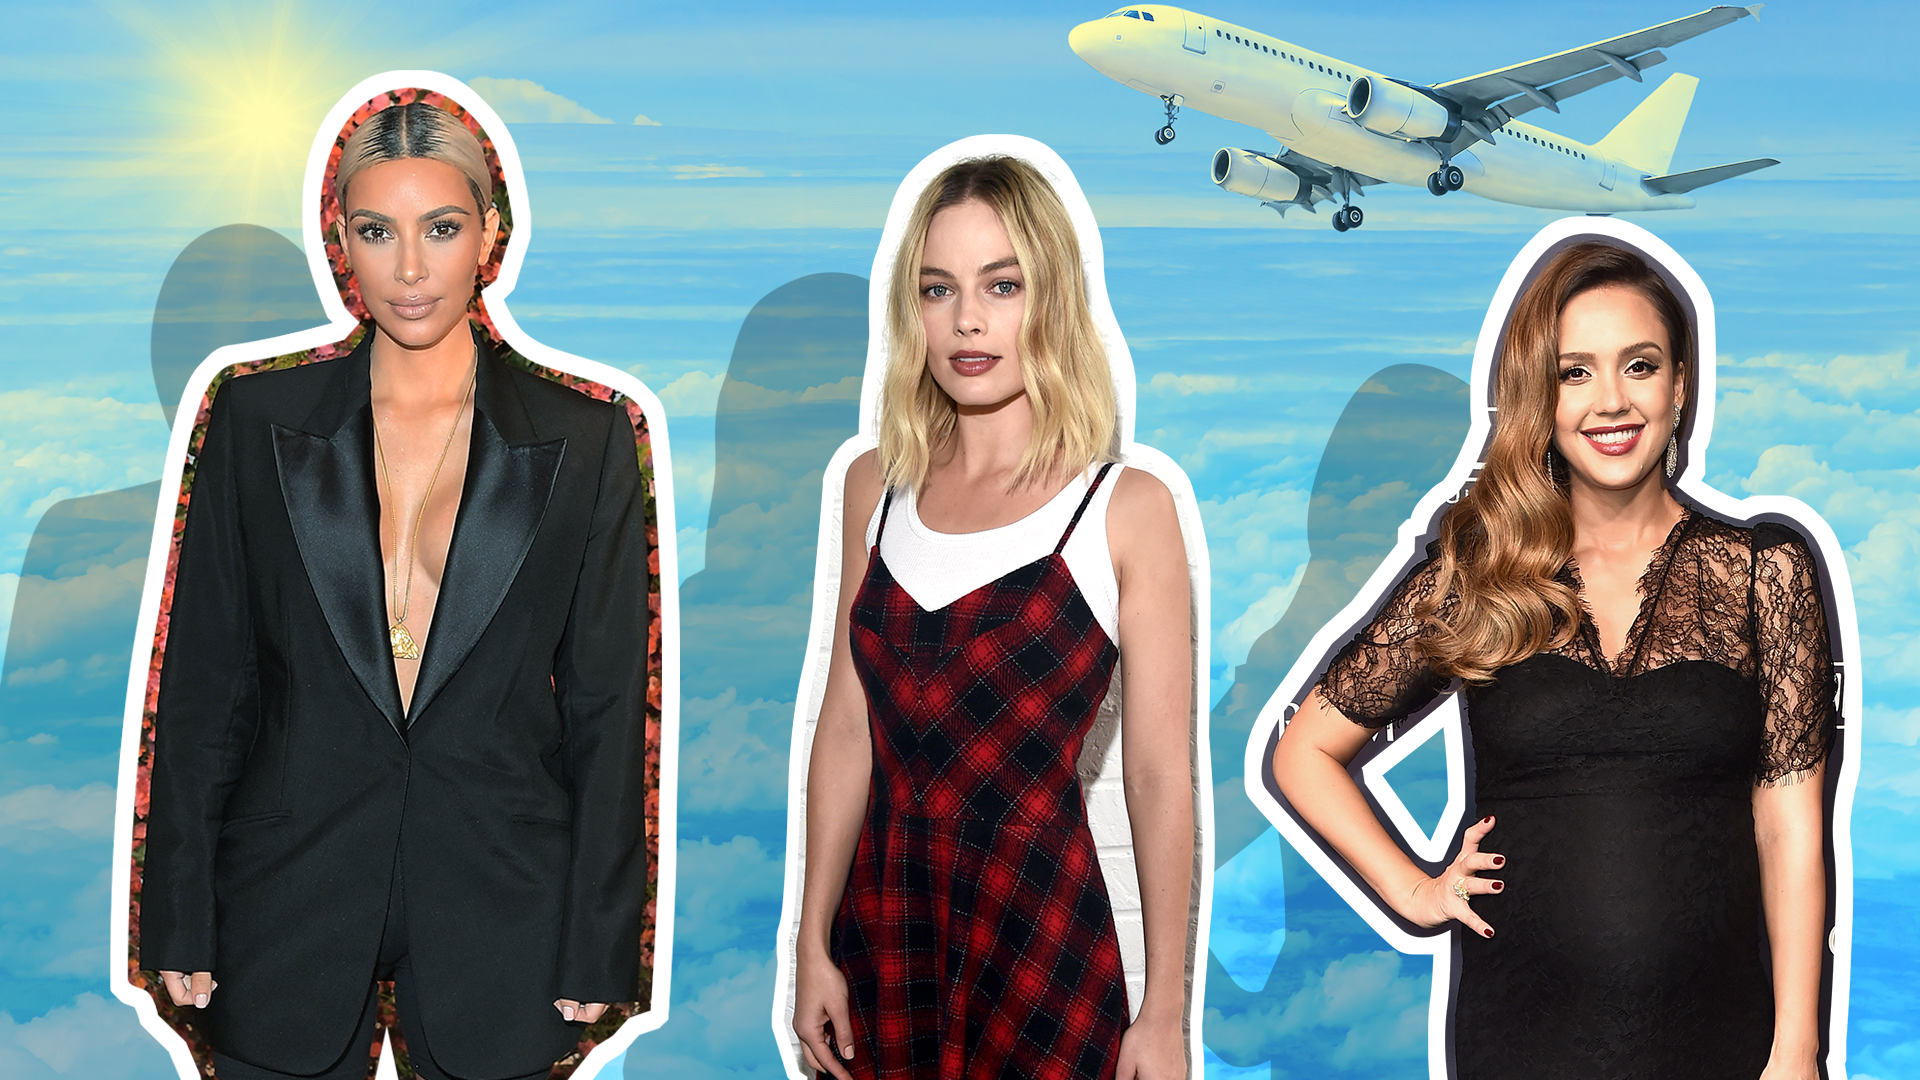 16 Celebrities' Cures for Fighting Jet Lag and Counteracting Travel Fatigue